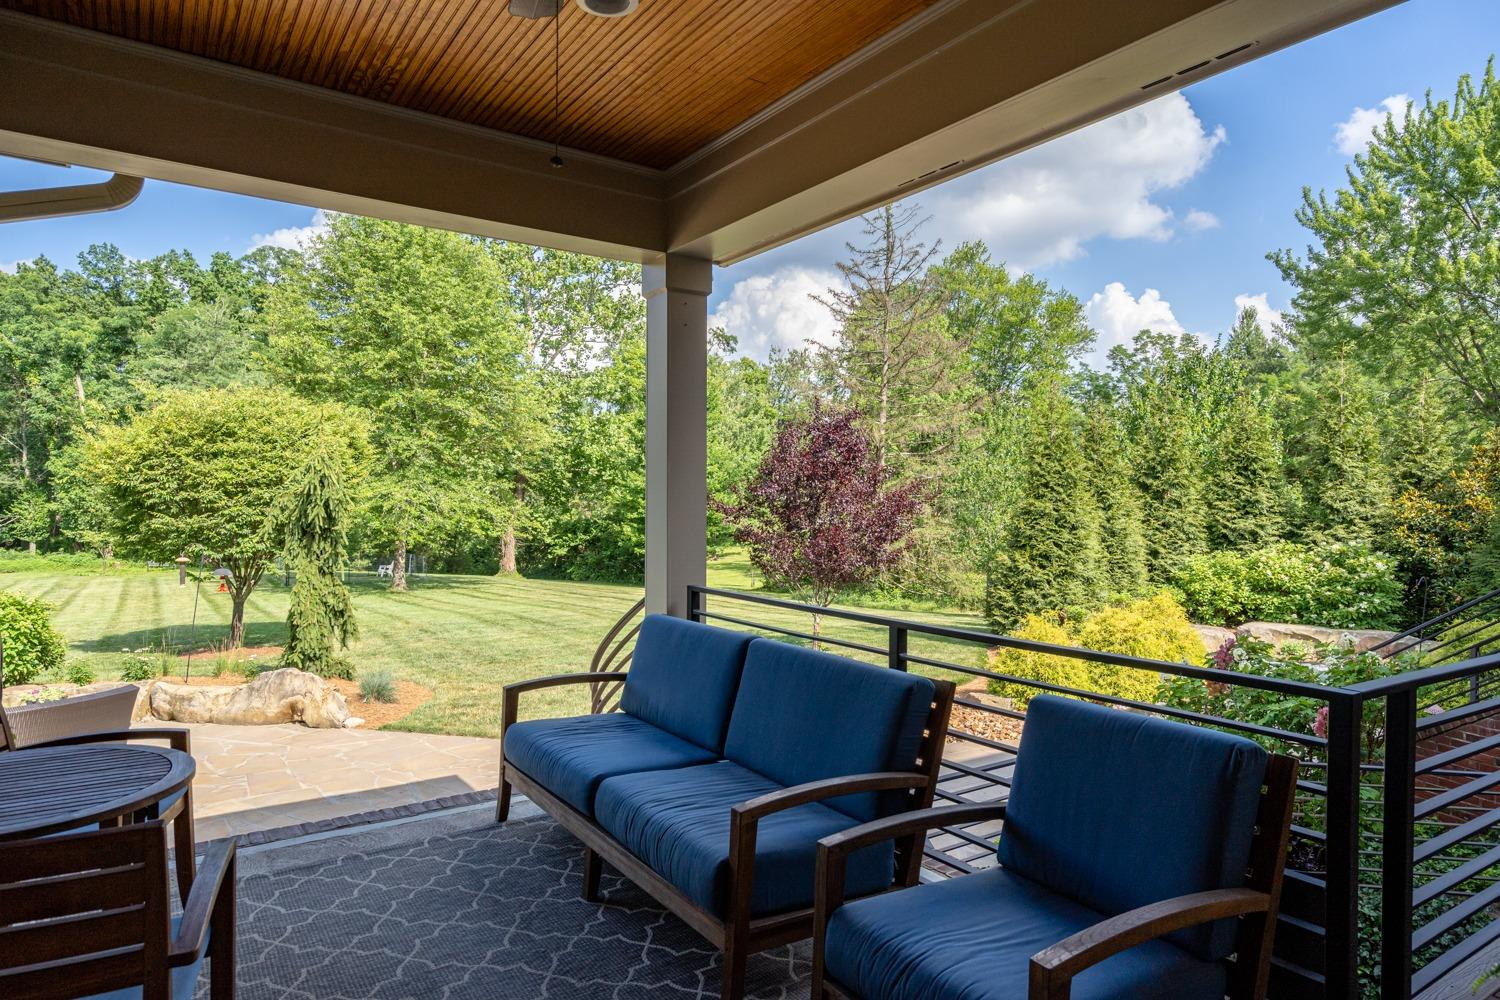 Relax in the shade on your patio with beadboard ceiling and fan.